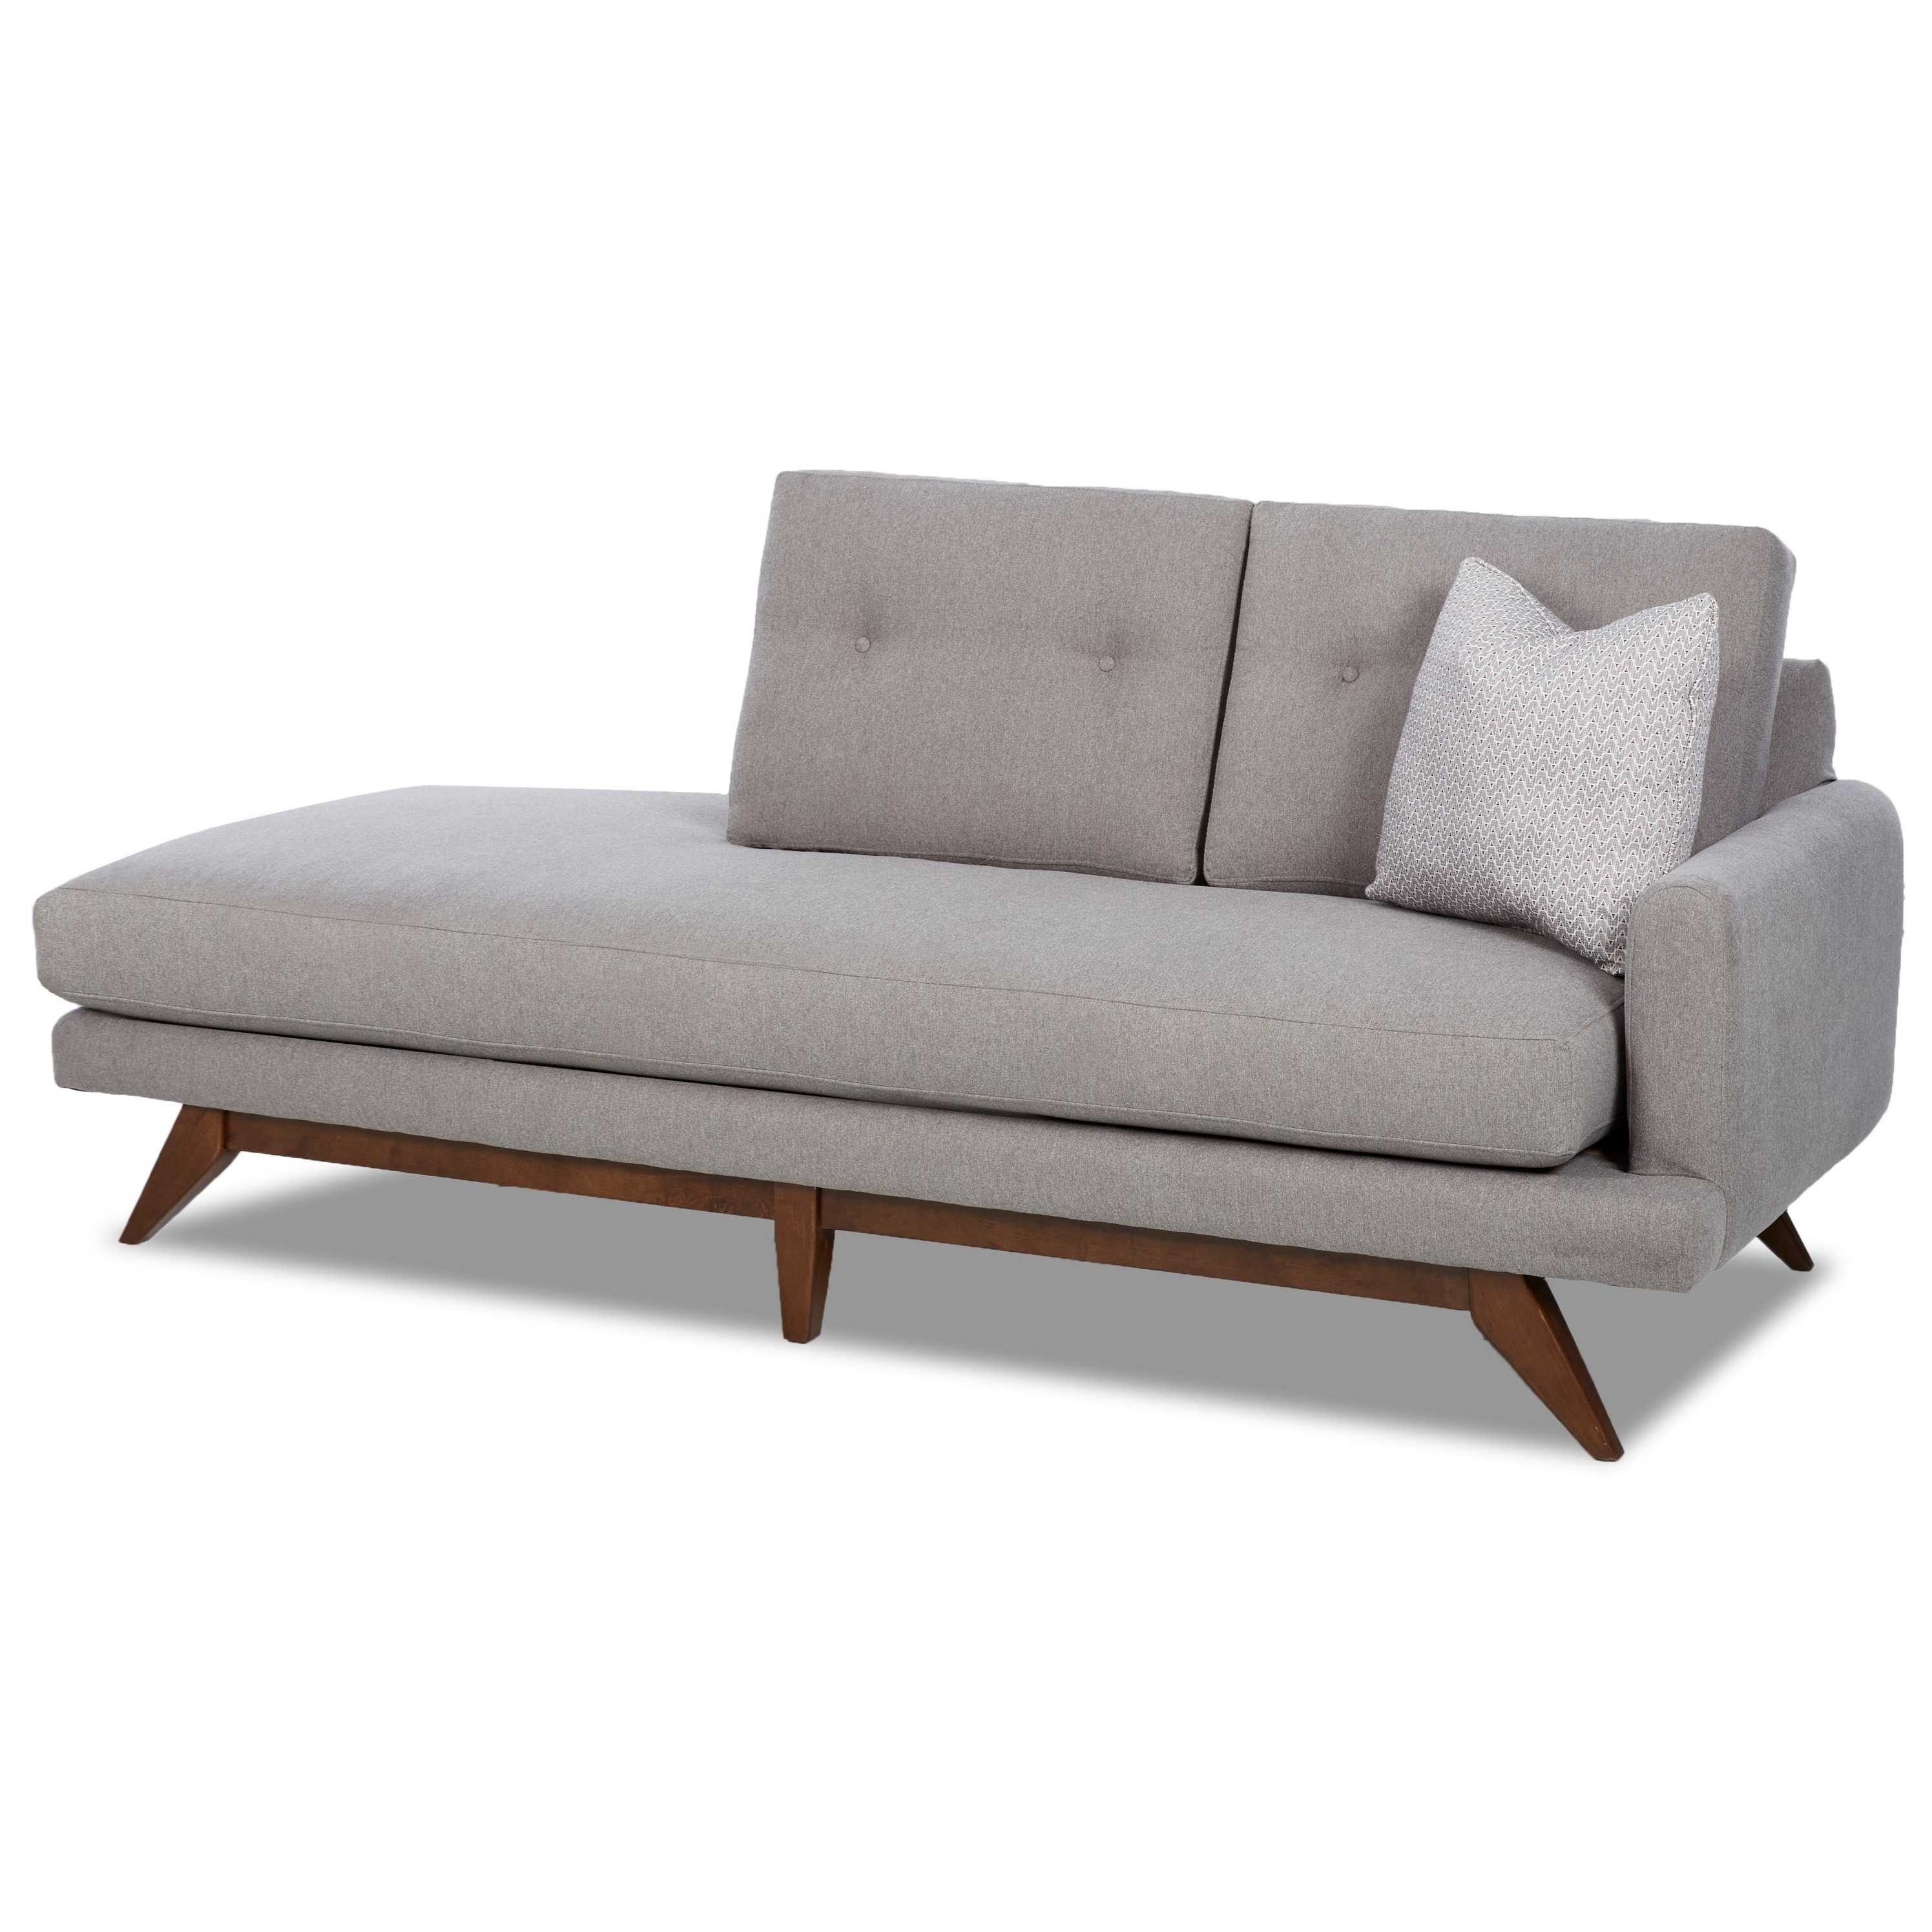 Well Known Mid Century Chaises Pertaining To Sofa : Nice Mid Century Modern Chaise Lounge Chairs Sofa Mid (View 5 of 15)